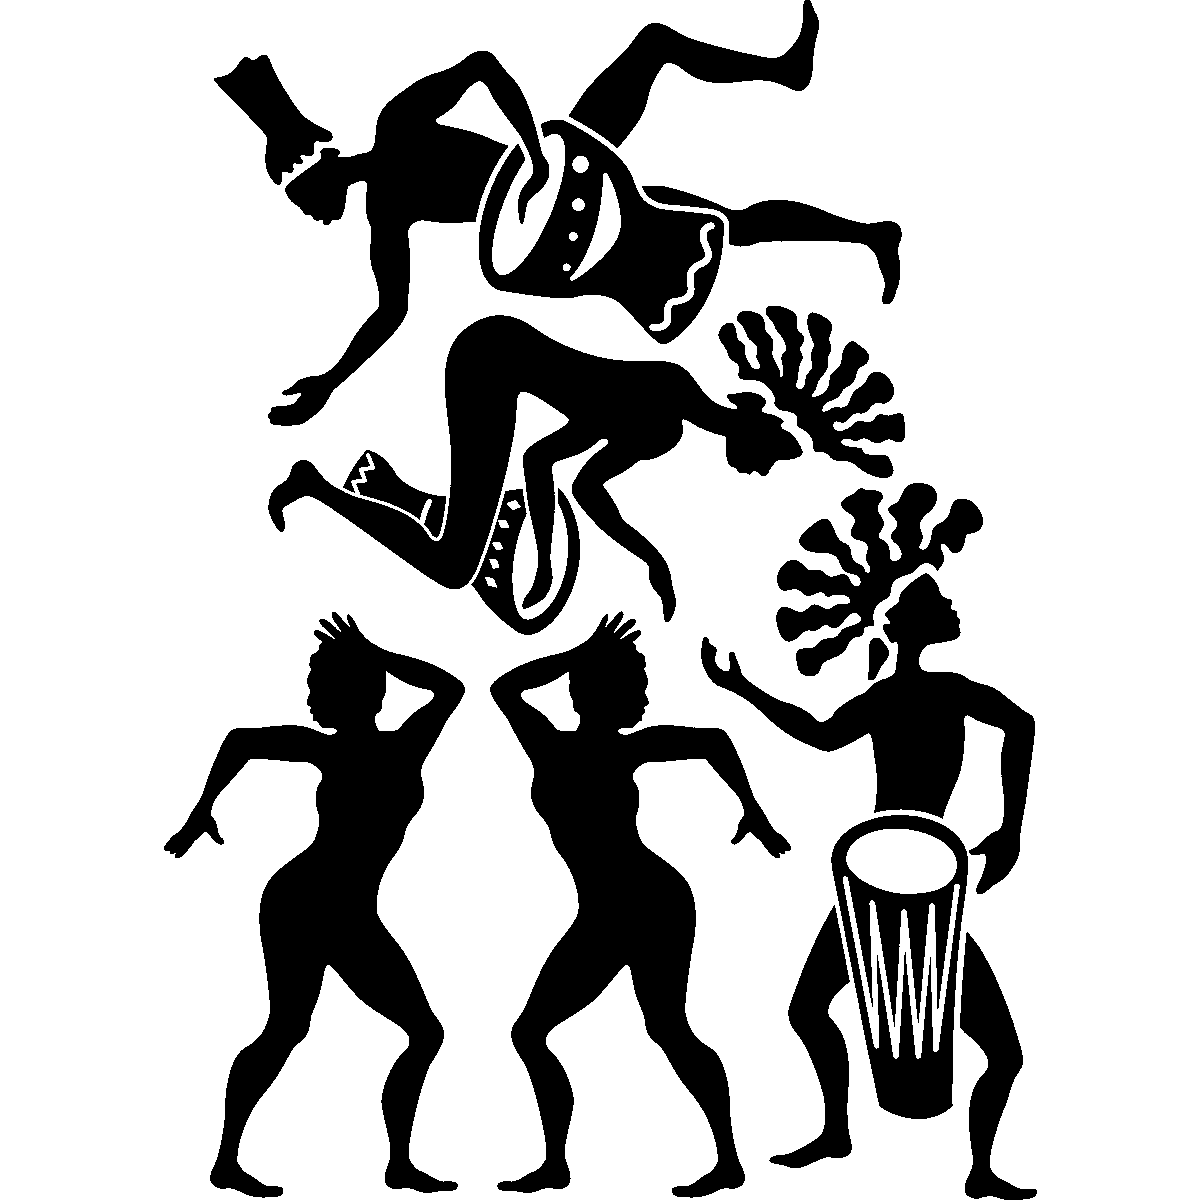 Stickers muraux musique sticker danse africaine for Danse africaine